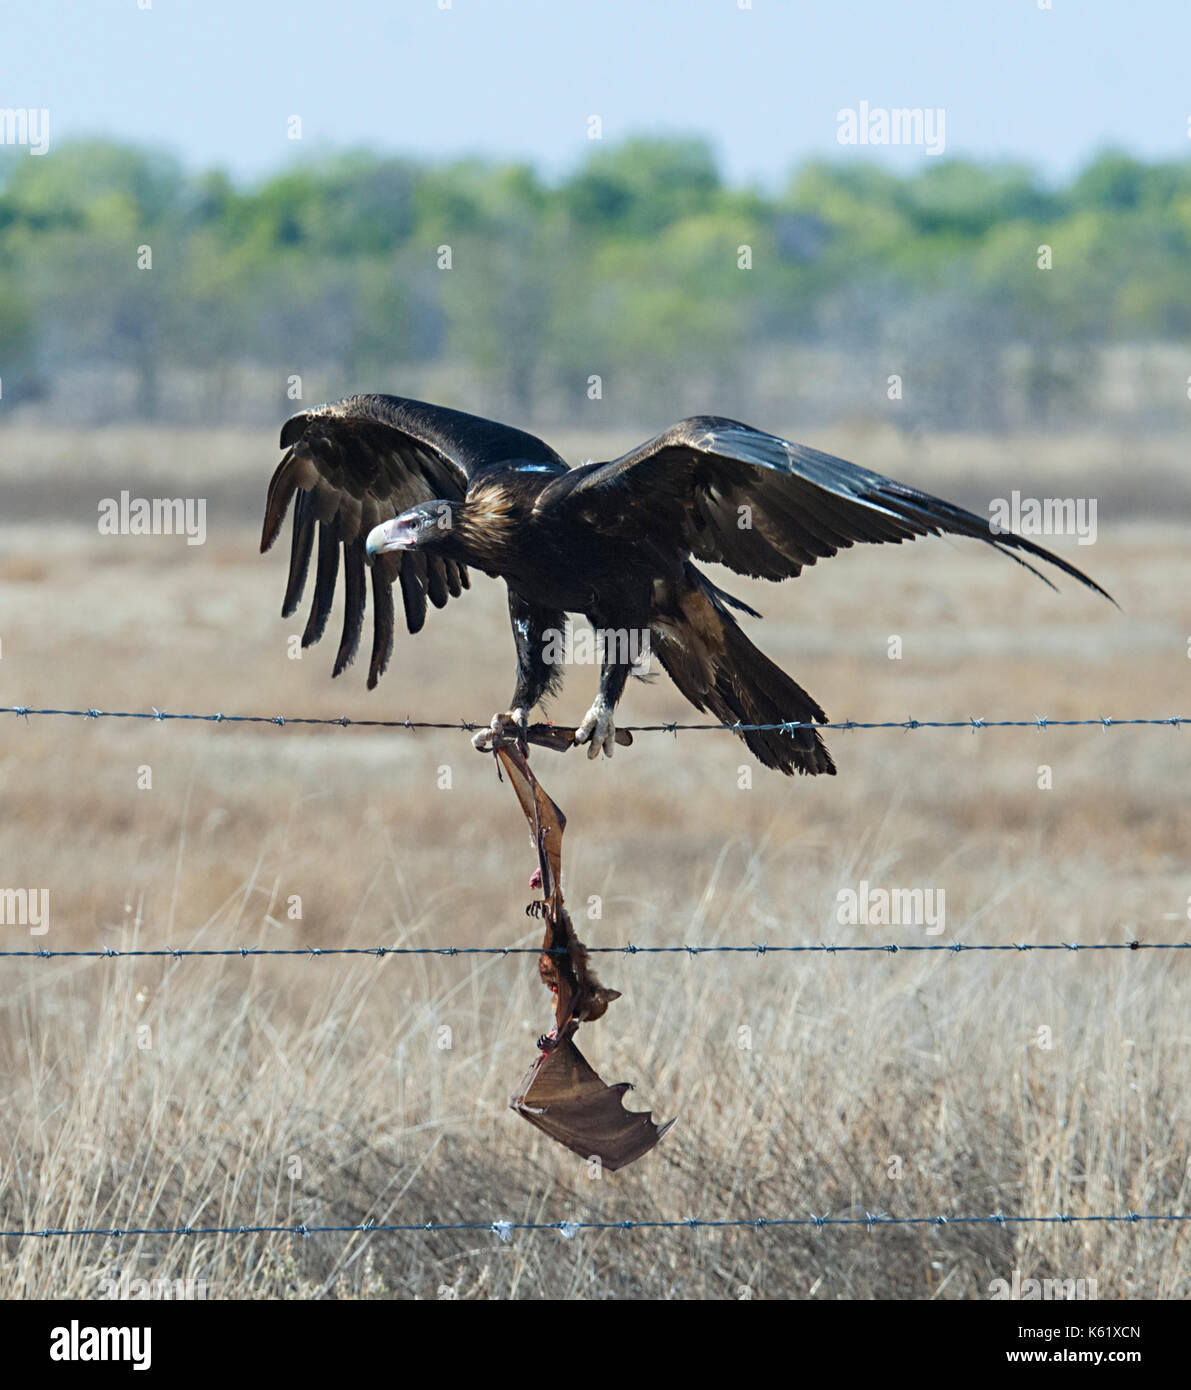 wedge-tailed-eagle-aquila-audax-with-a-d